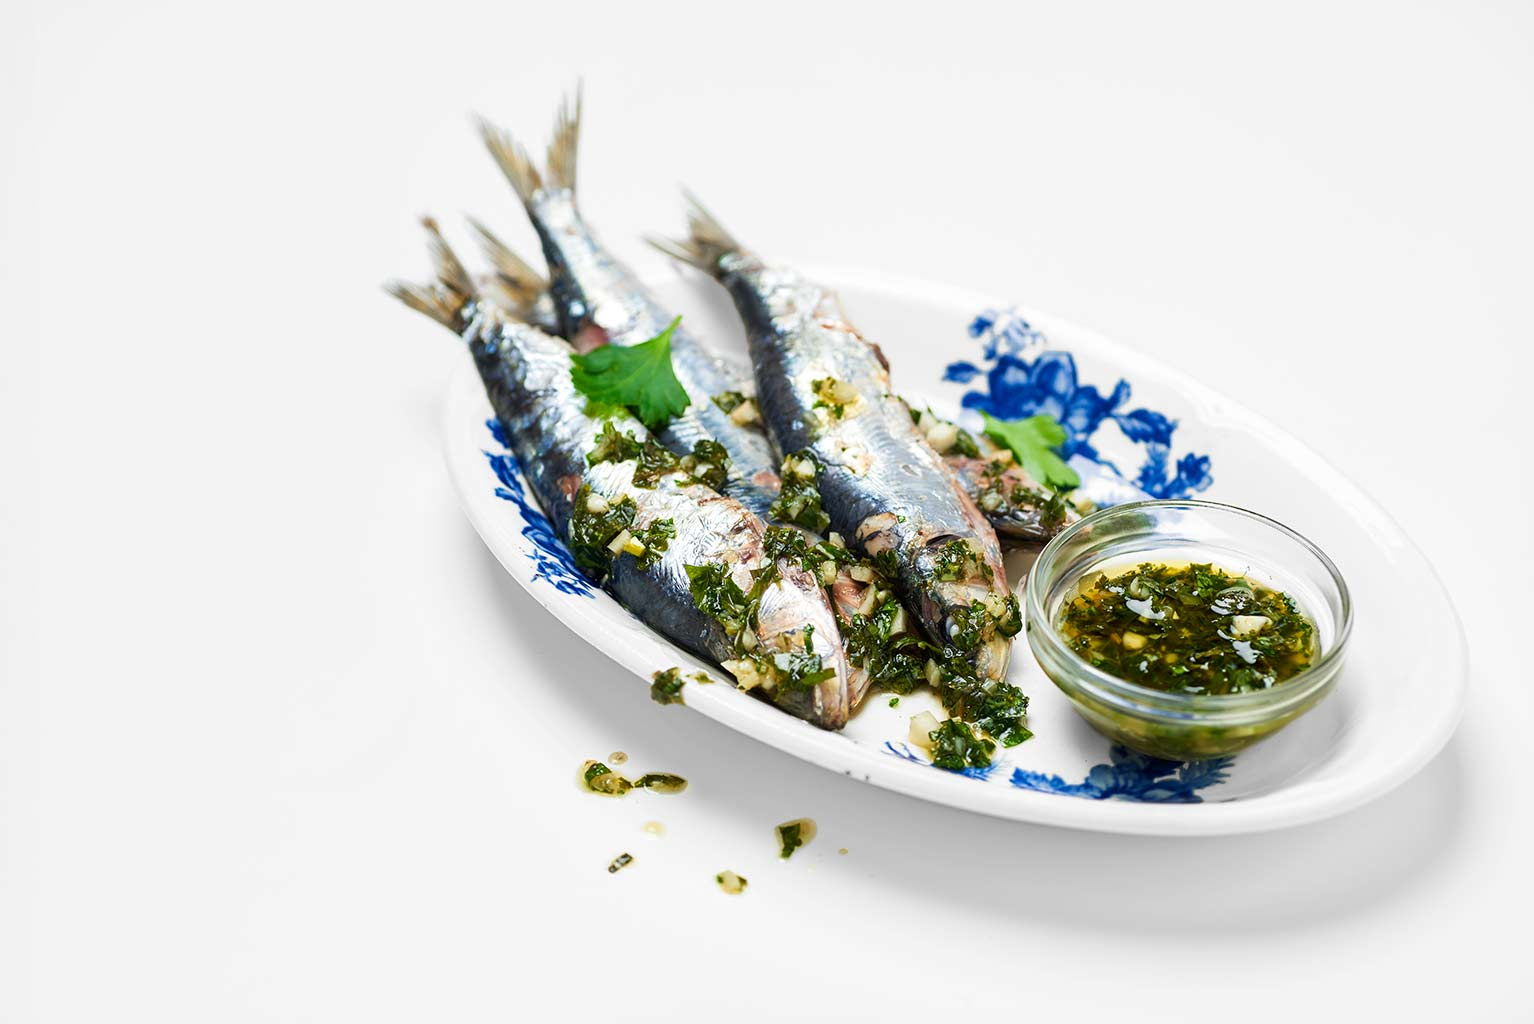 forfood-lekue-bodegon-food-stylist-sardinas